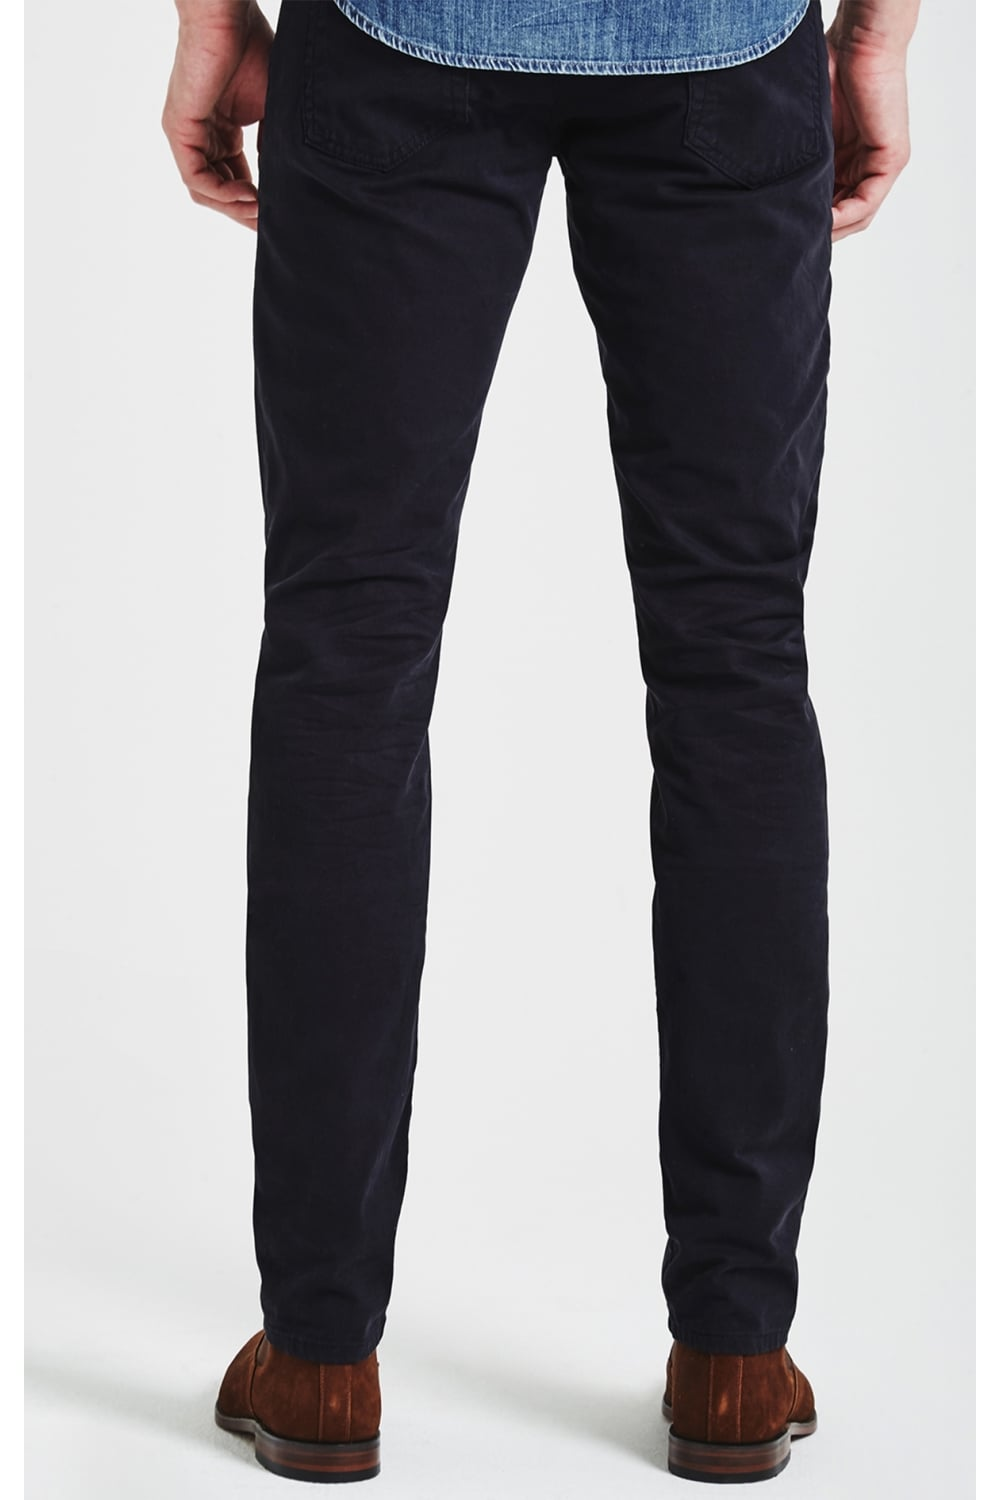 87b8eec8e4f AG Men's 1783BES The Tellis Slim Red or Navy Jeans